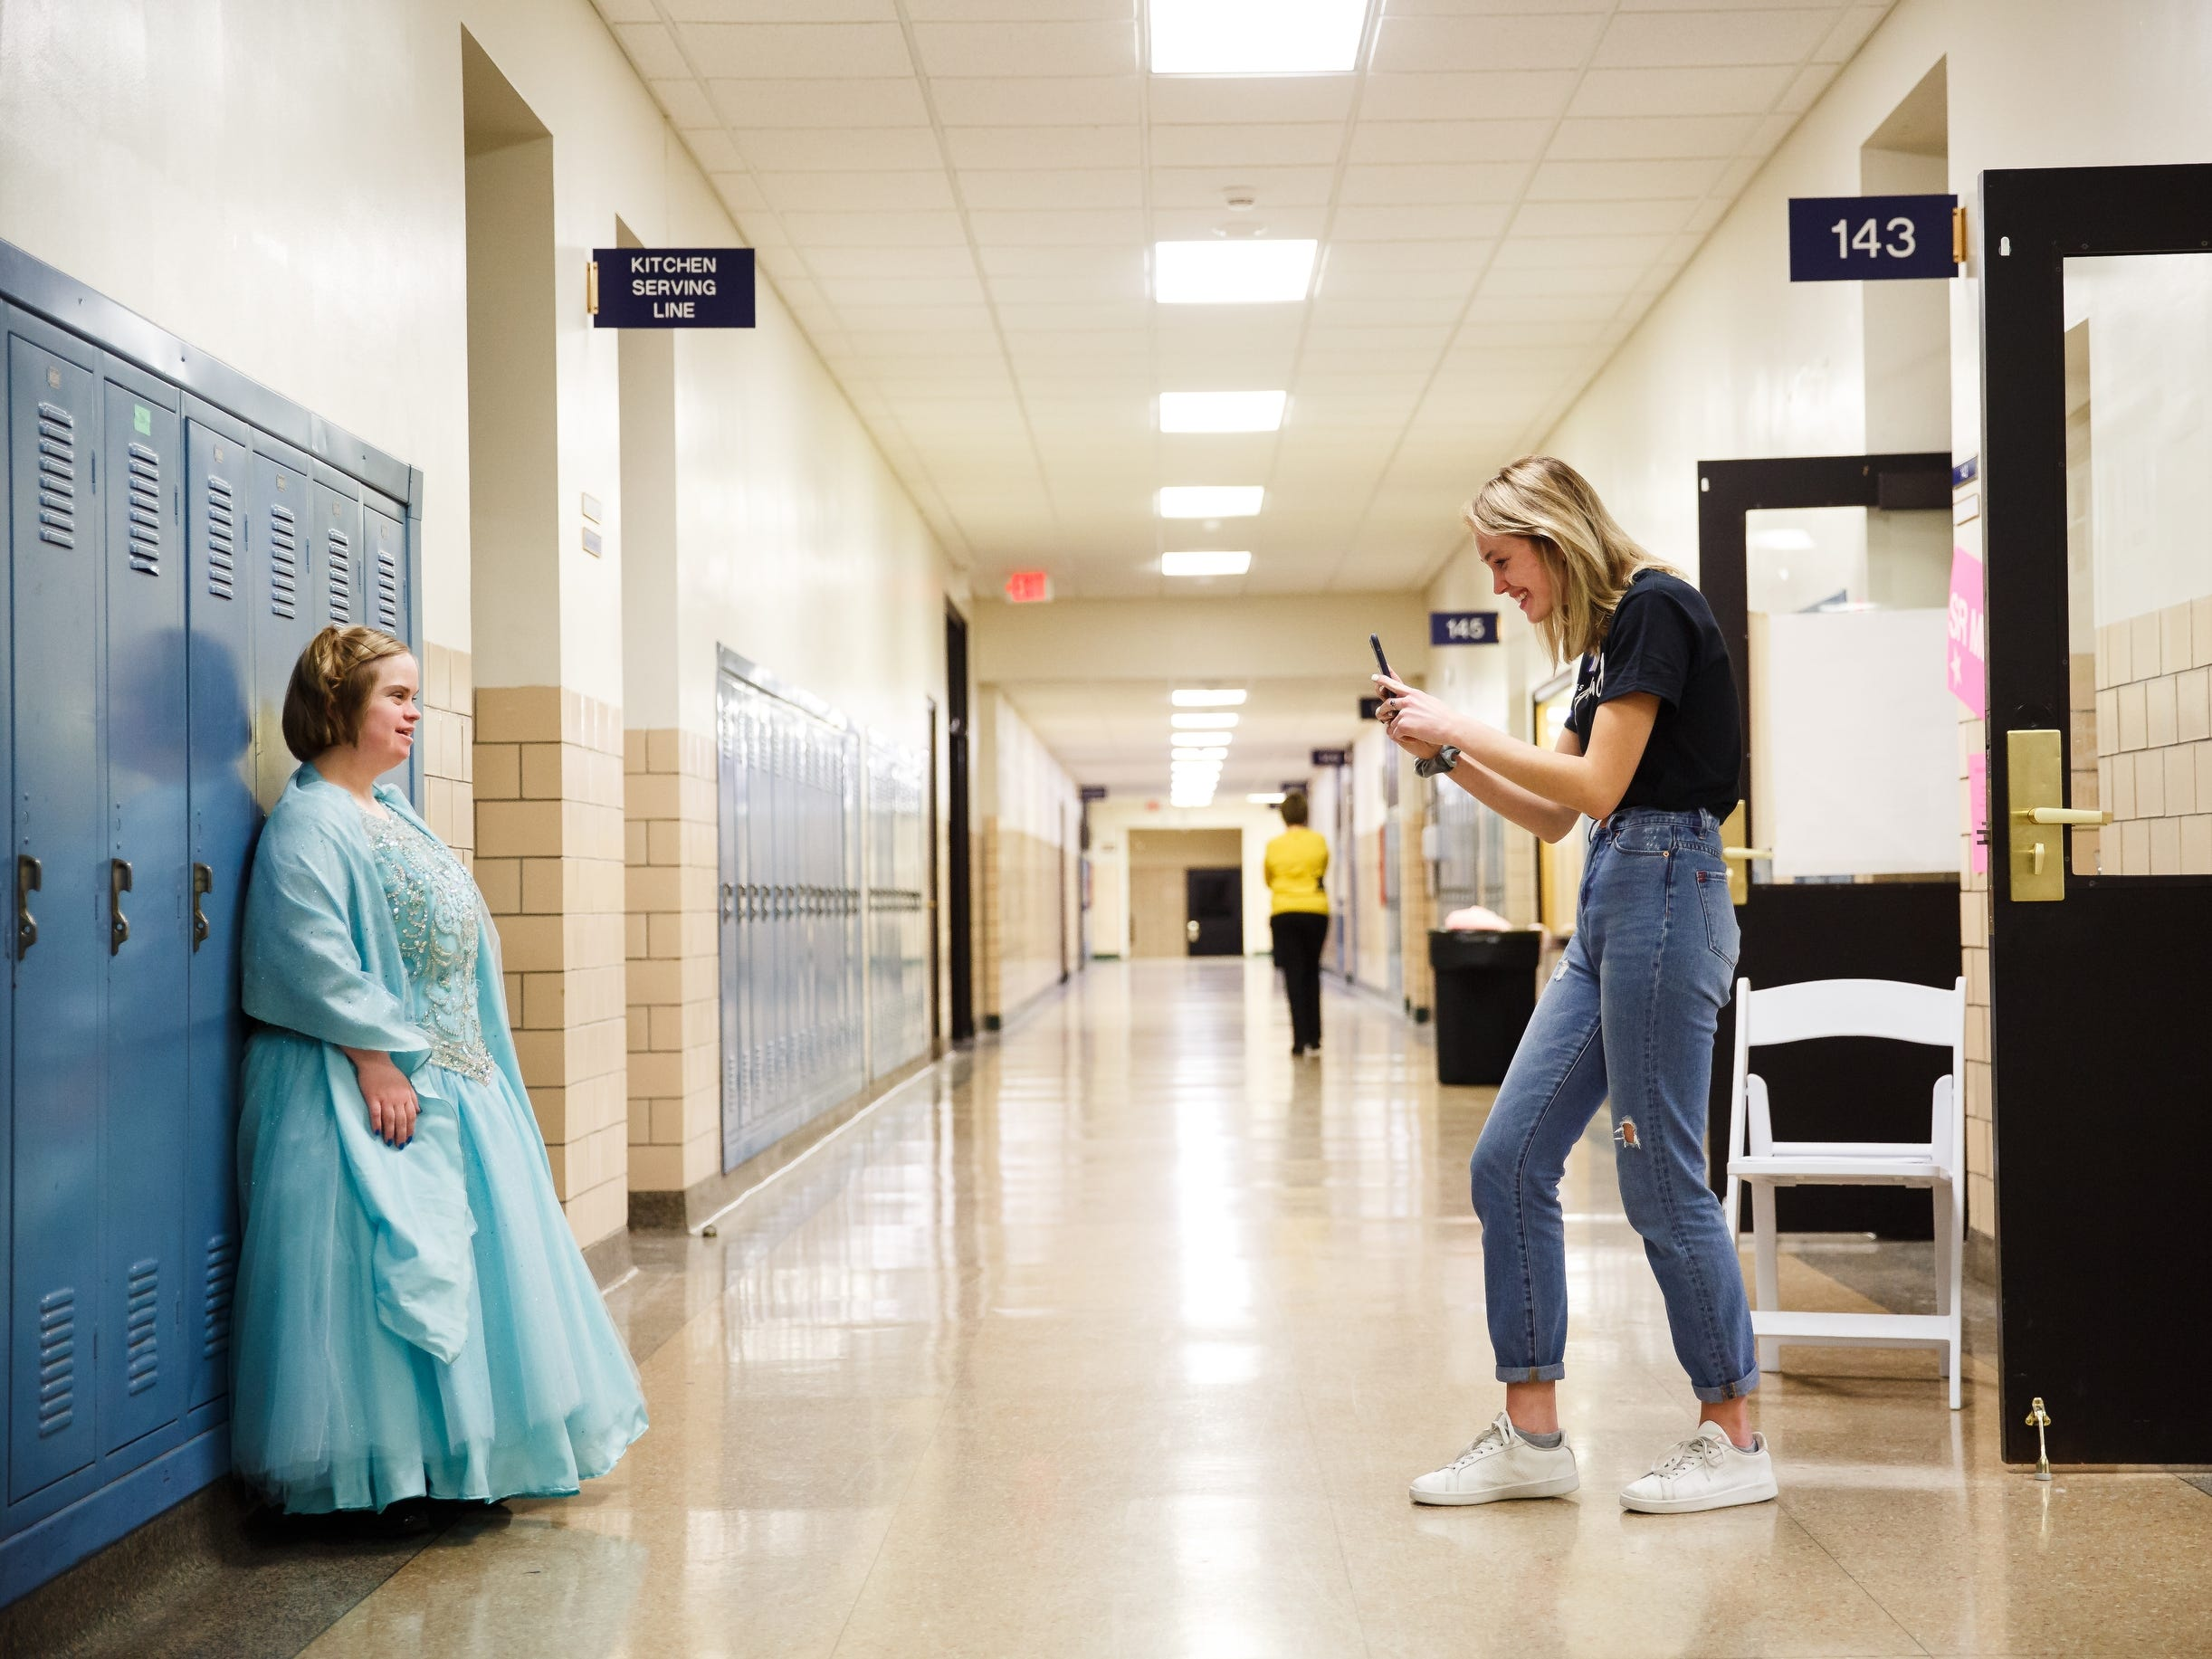 Cait Doty, 23 of Des Moines takes a photo of her buddy Jenna Simmons, 28 of Spirit Lake during the 2019 Miss Amazing pageant at Franklin Jr. High School on Saturday, April 13, 2019, in Des Moines.